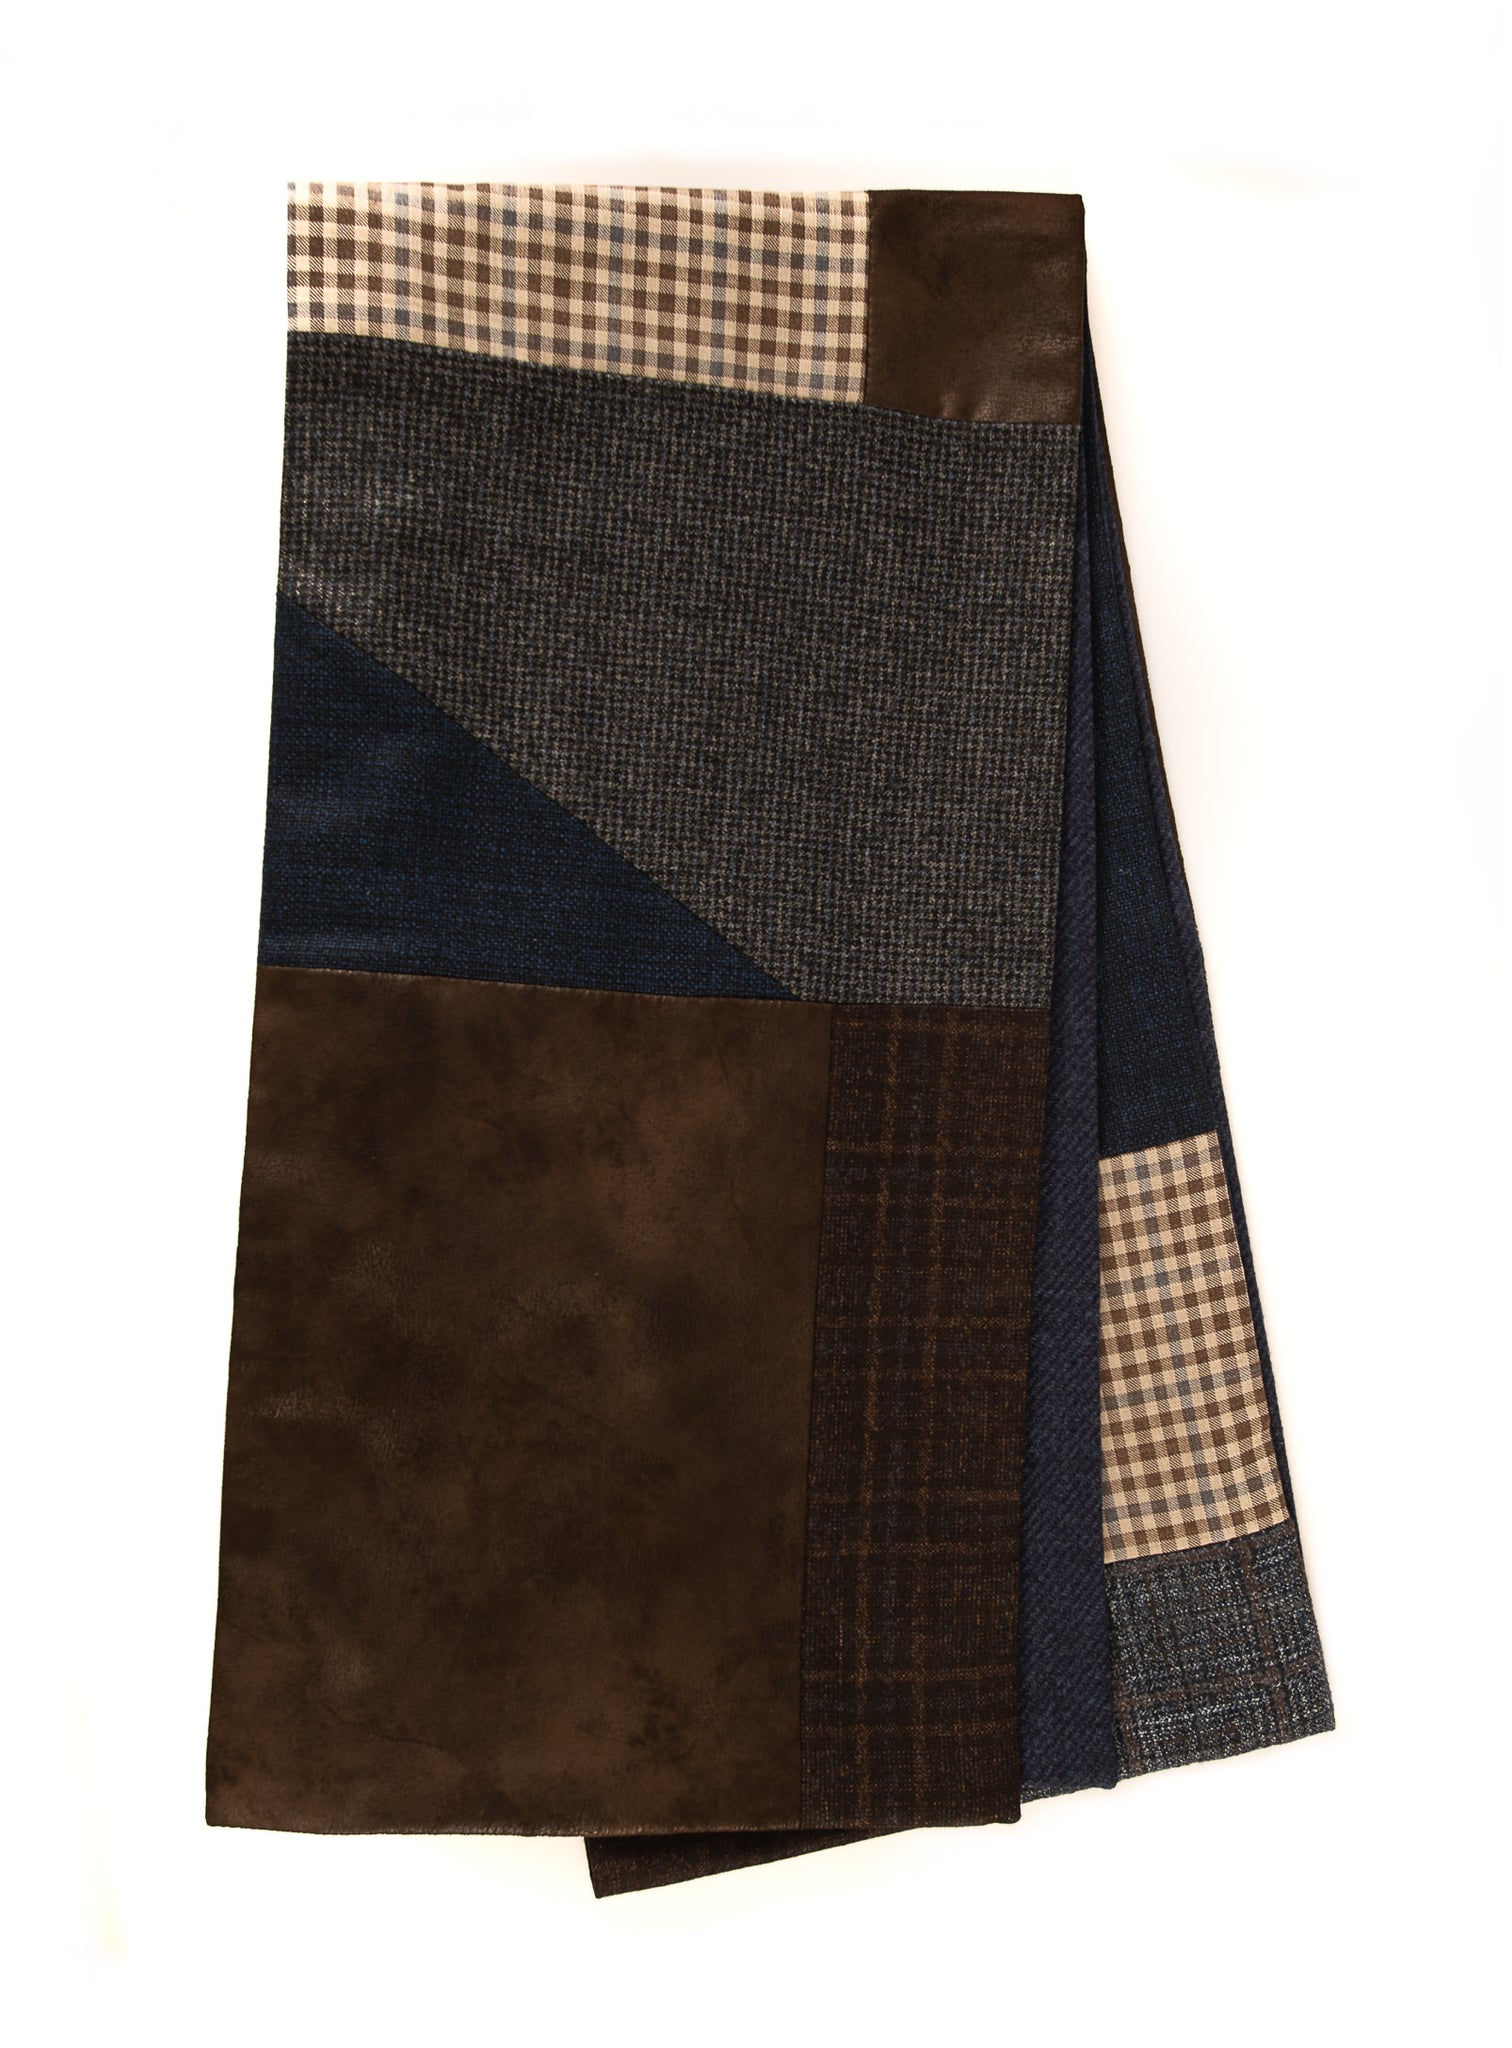 Geometric patchwork scarf - Blue, beige and brown